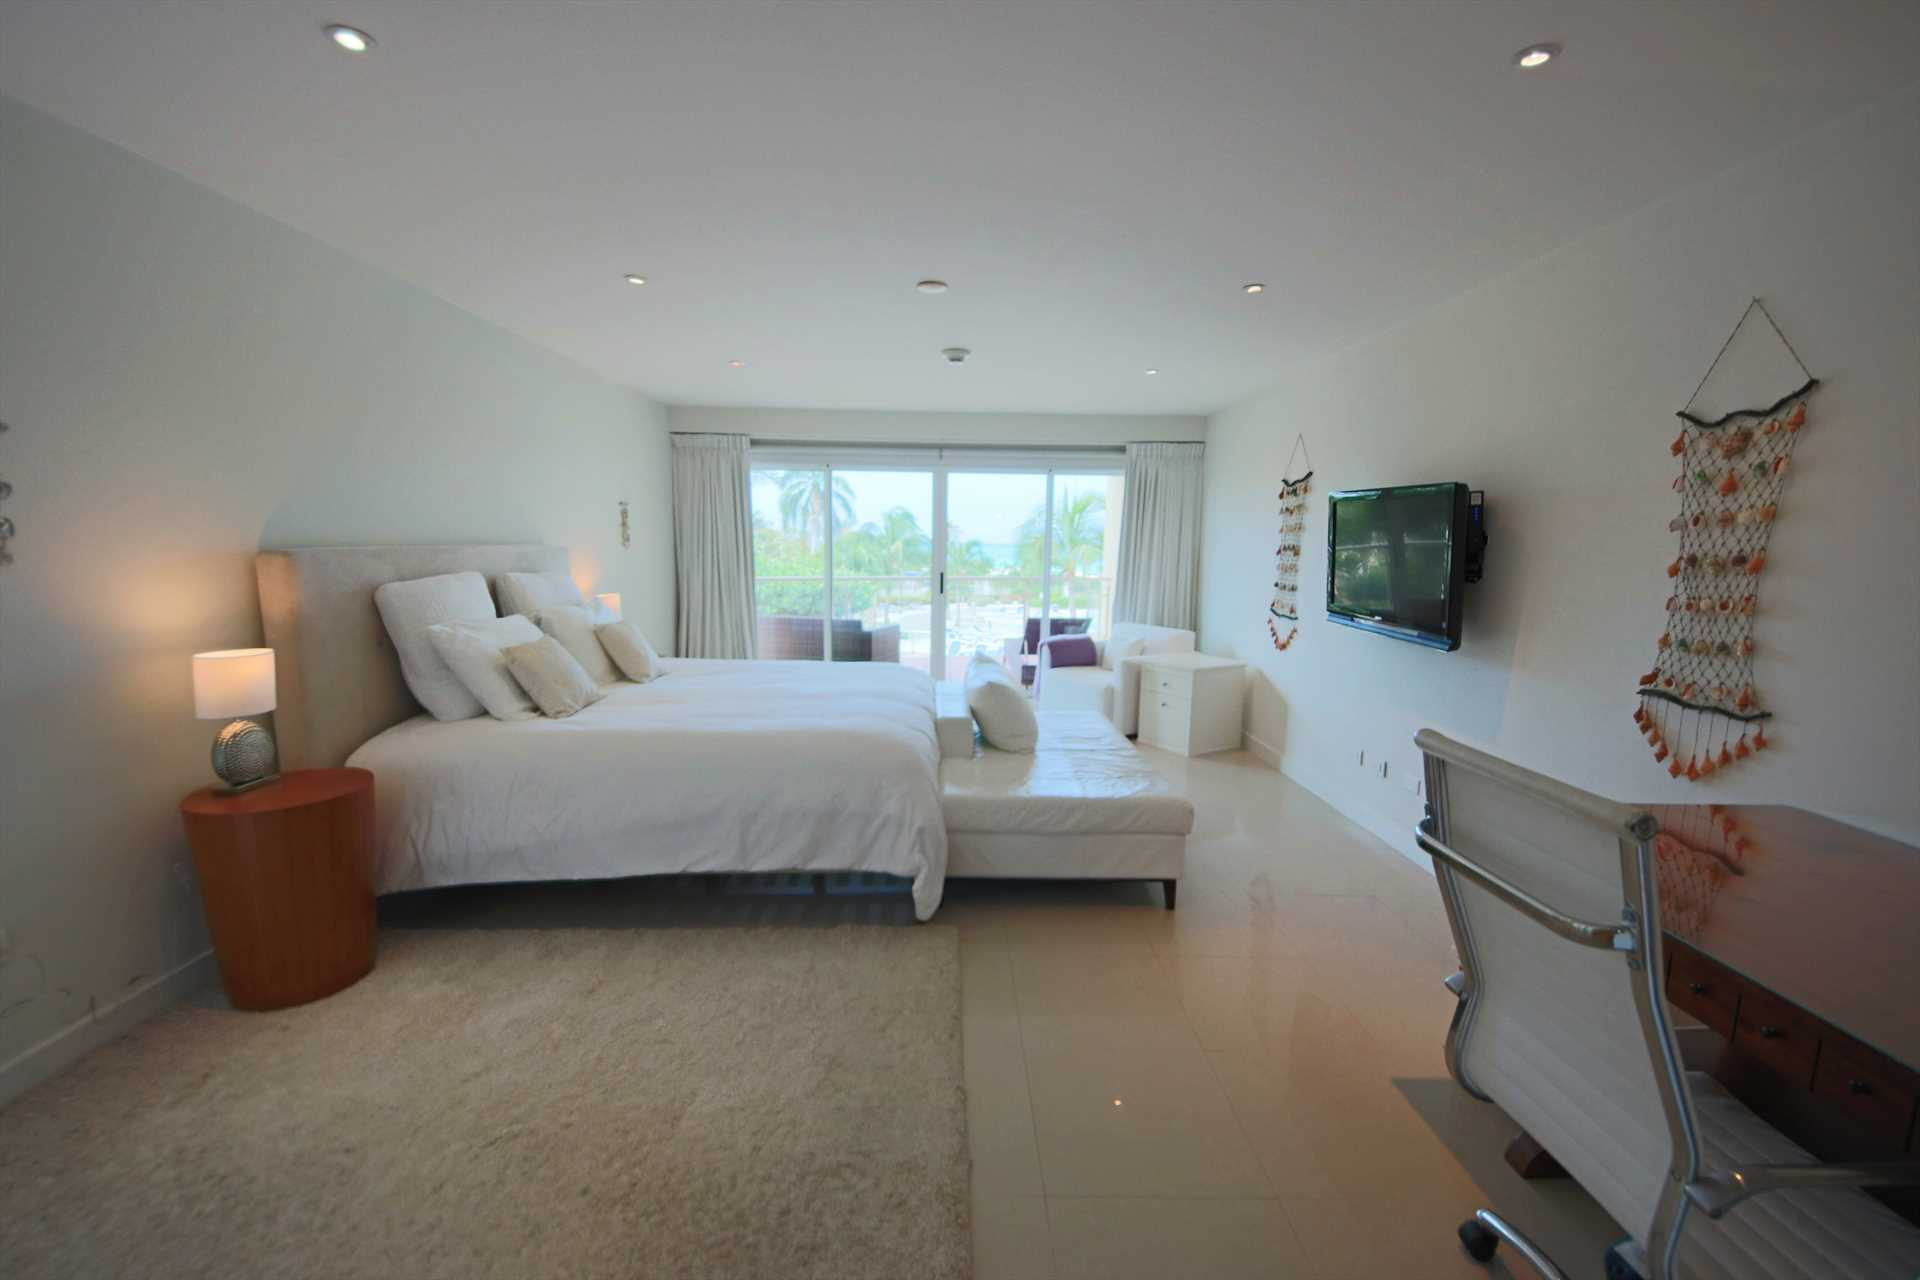 Master bedroom with a king-size bed, desk, HDTV and private balcony